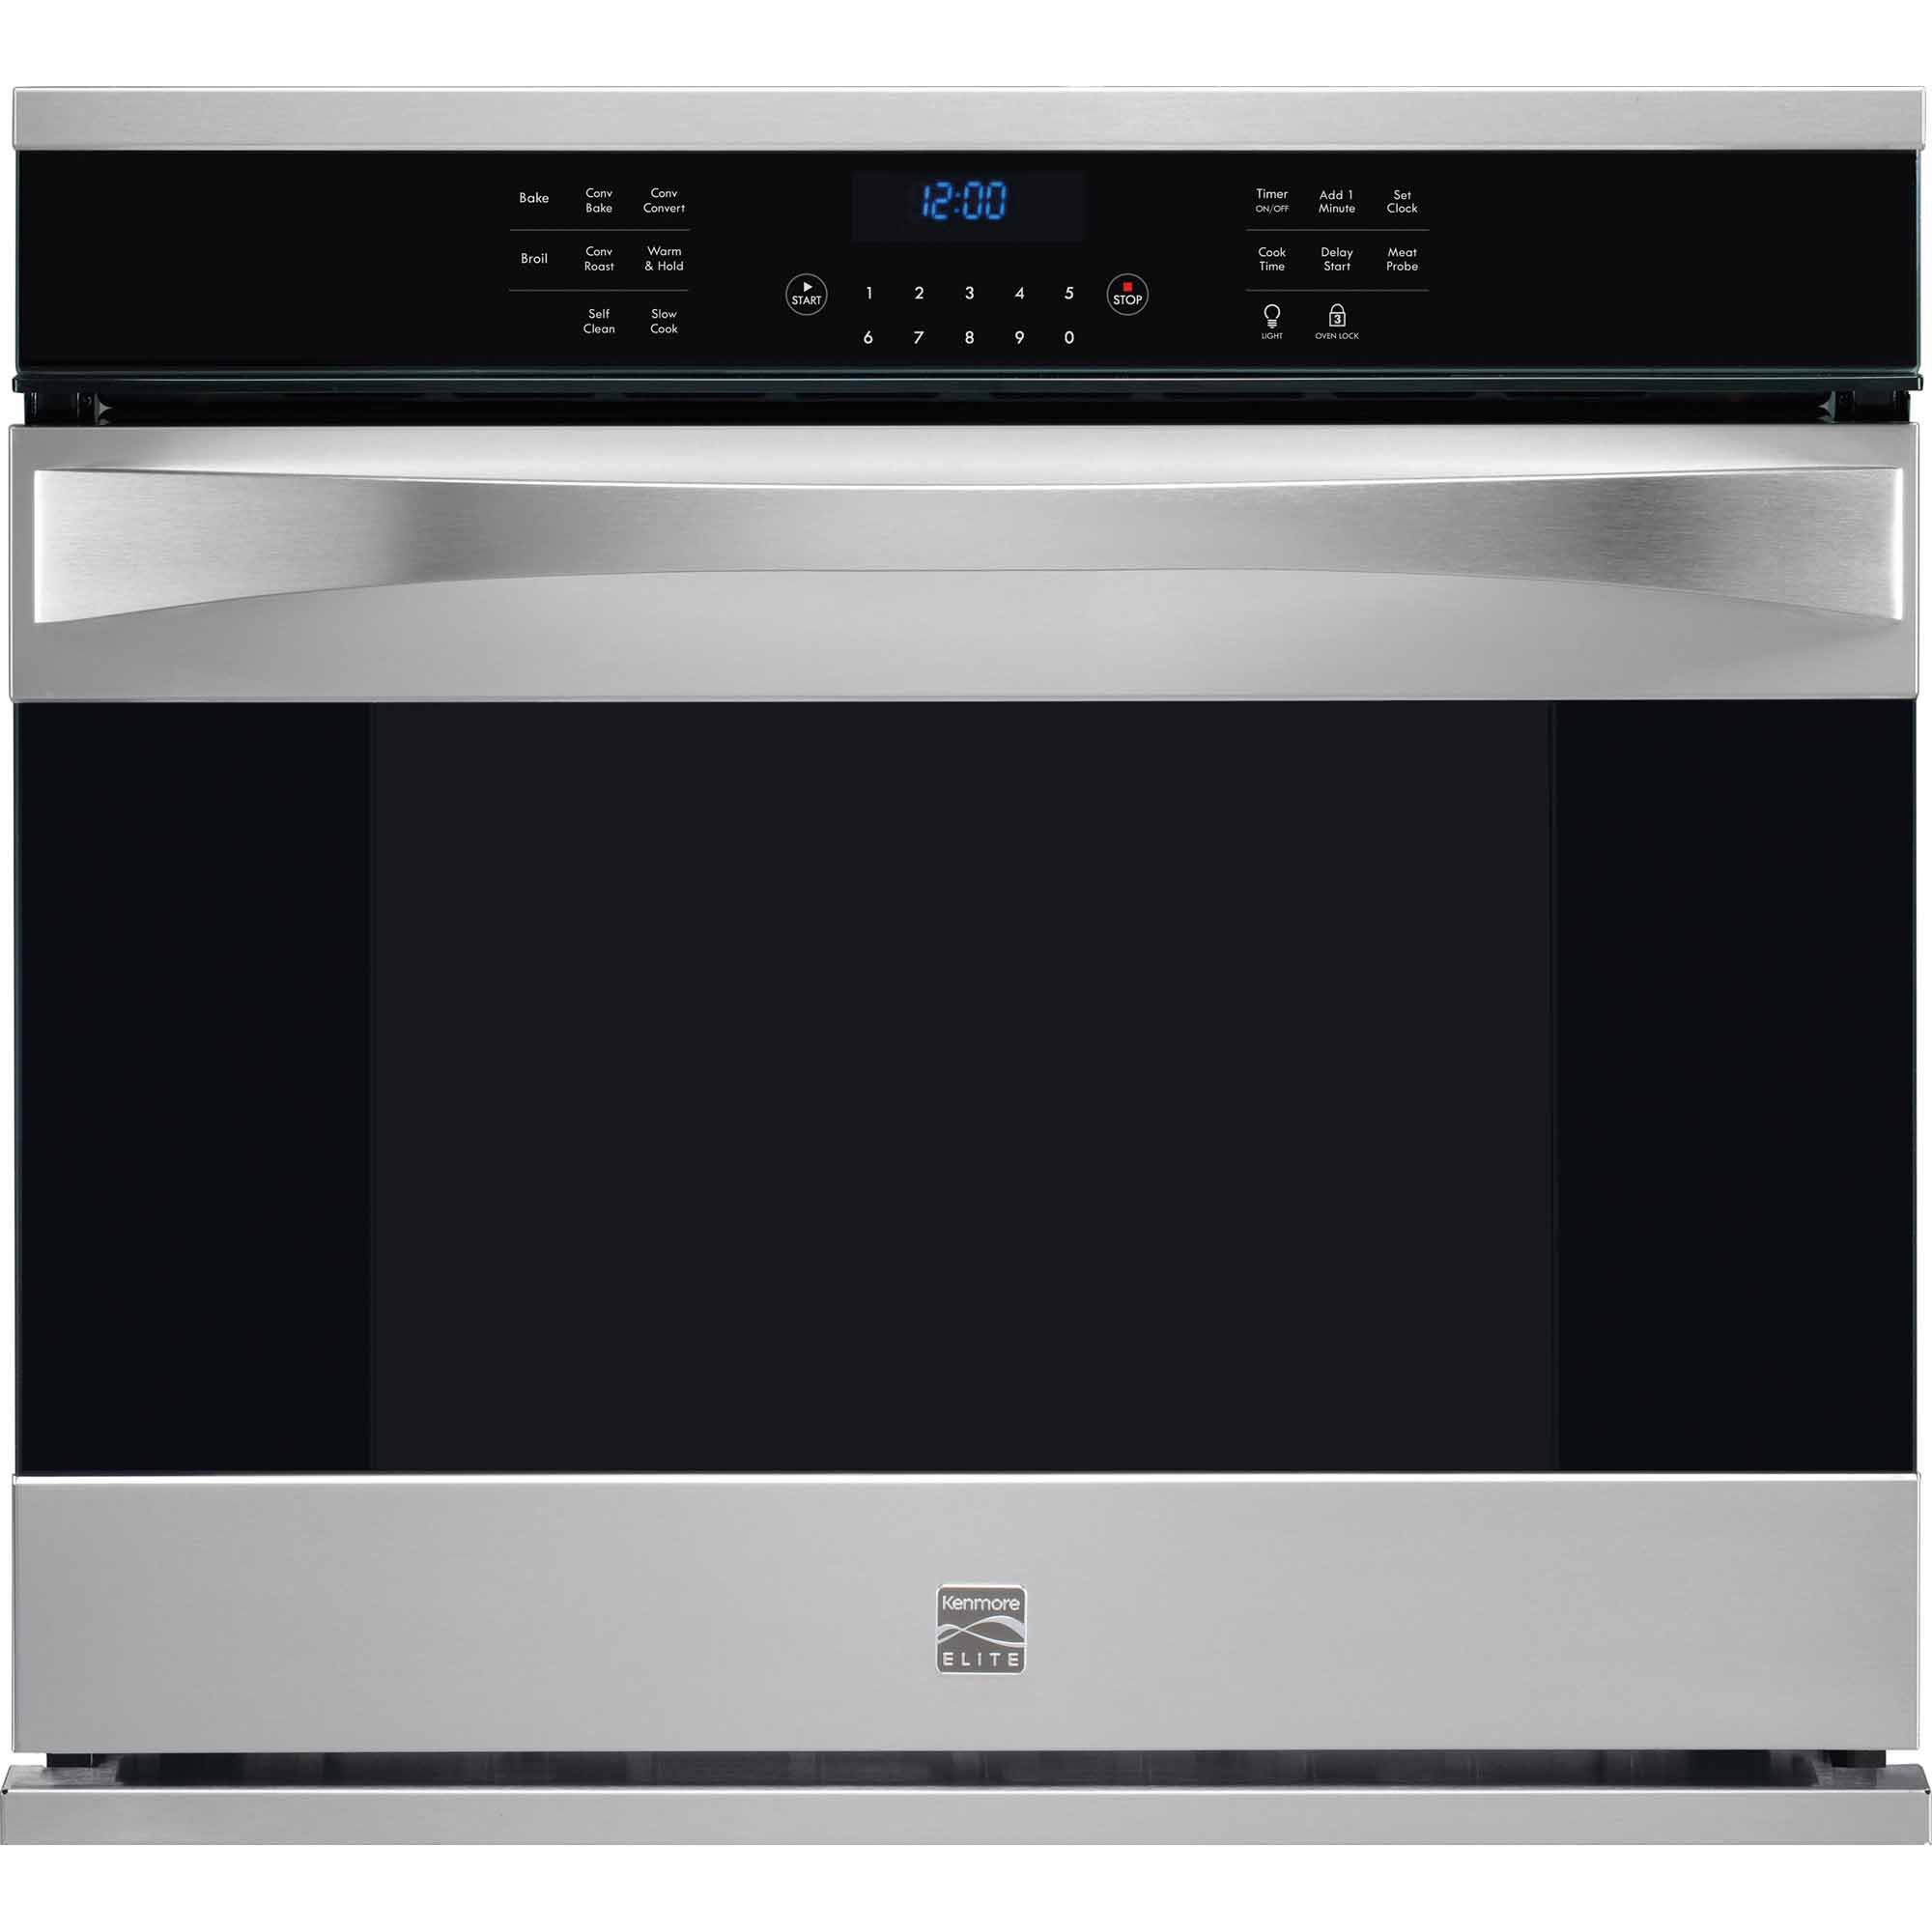 "Kenmore Elite 48353 51 cu ft 30"" Electric Wall OvenSears"